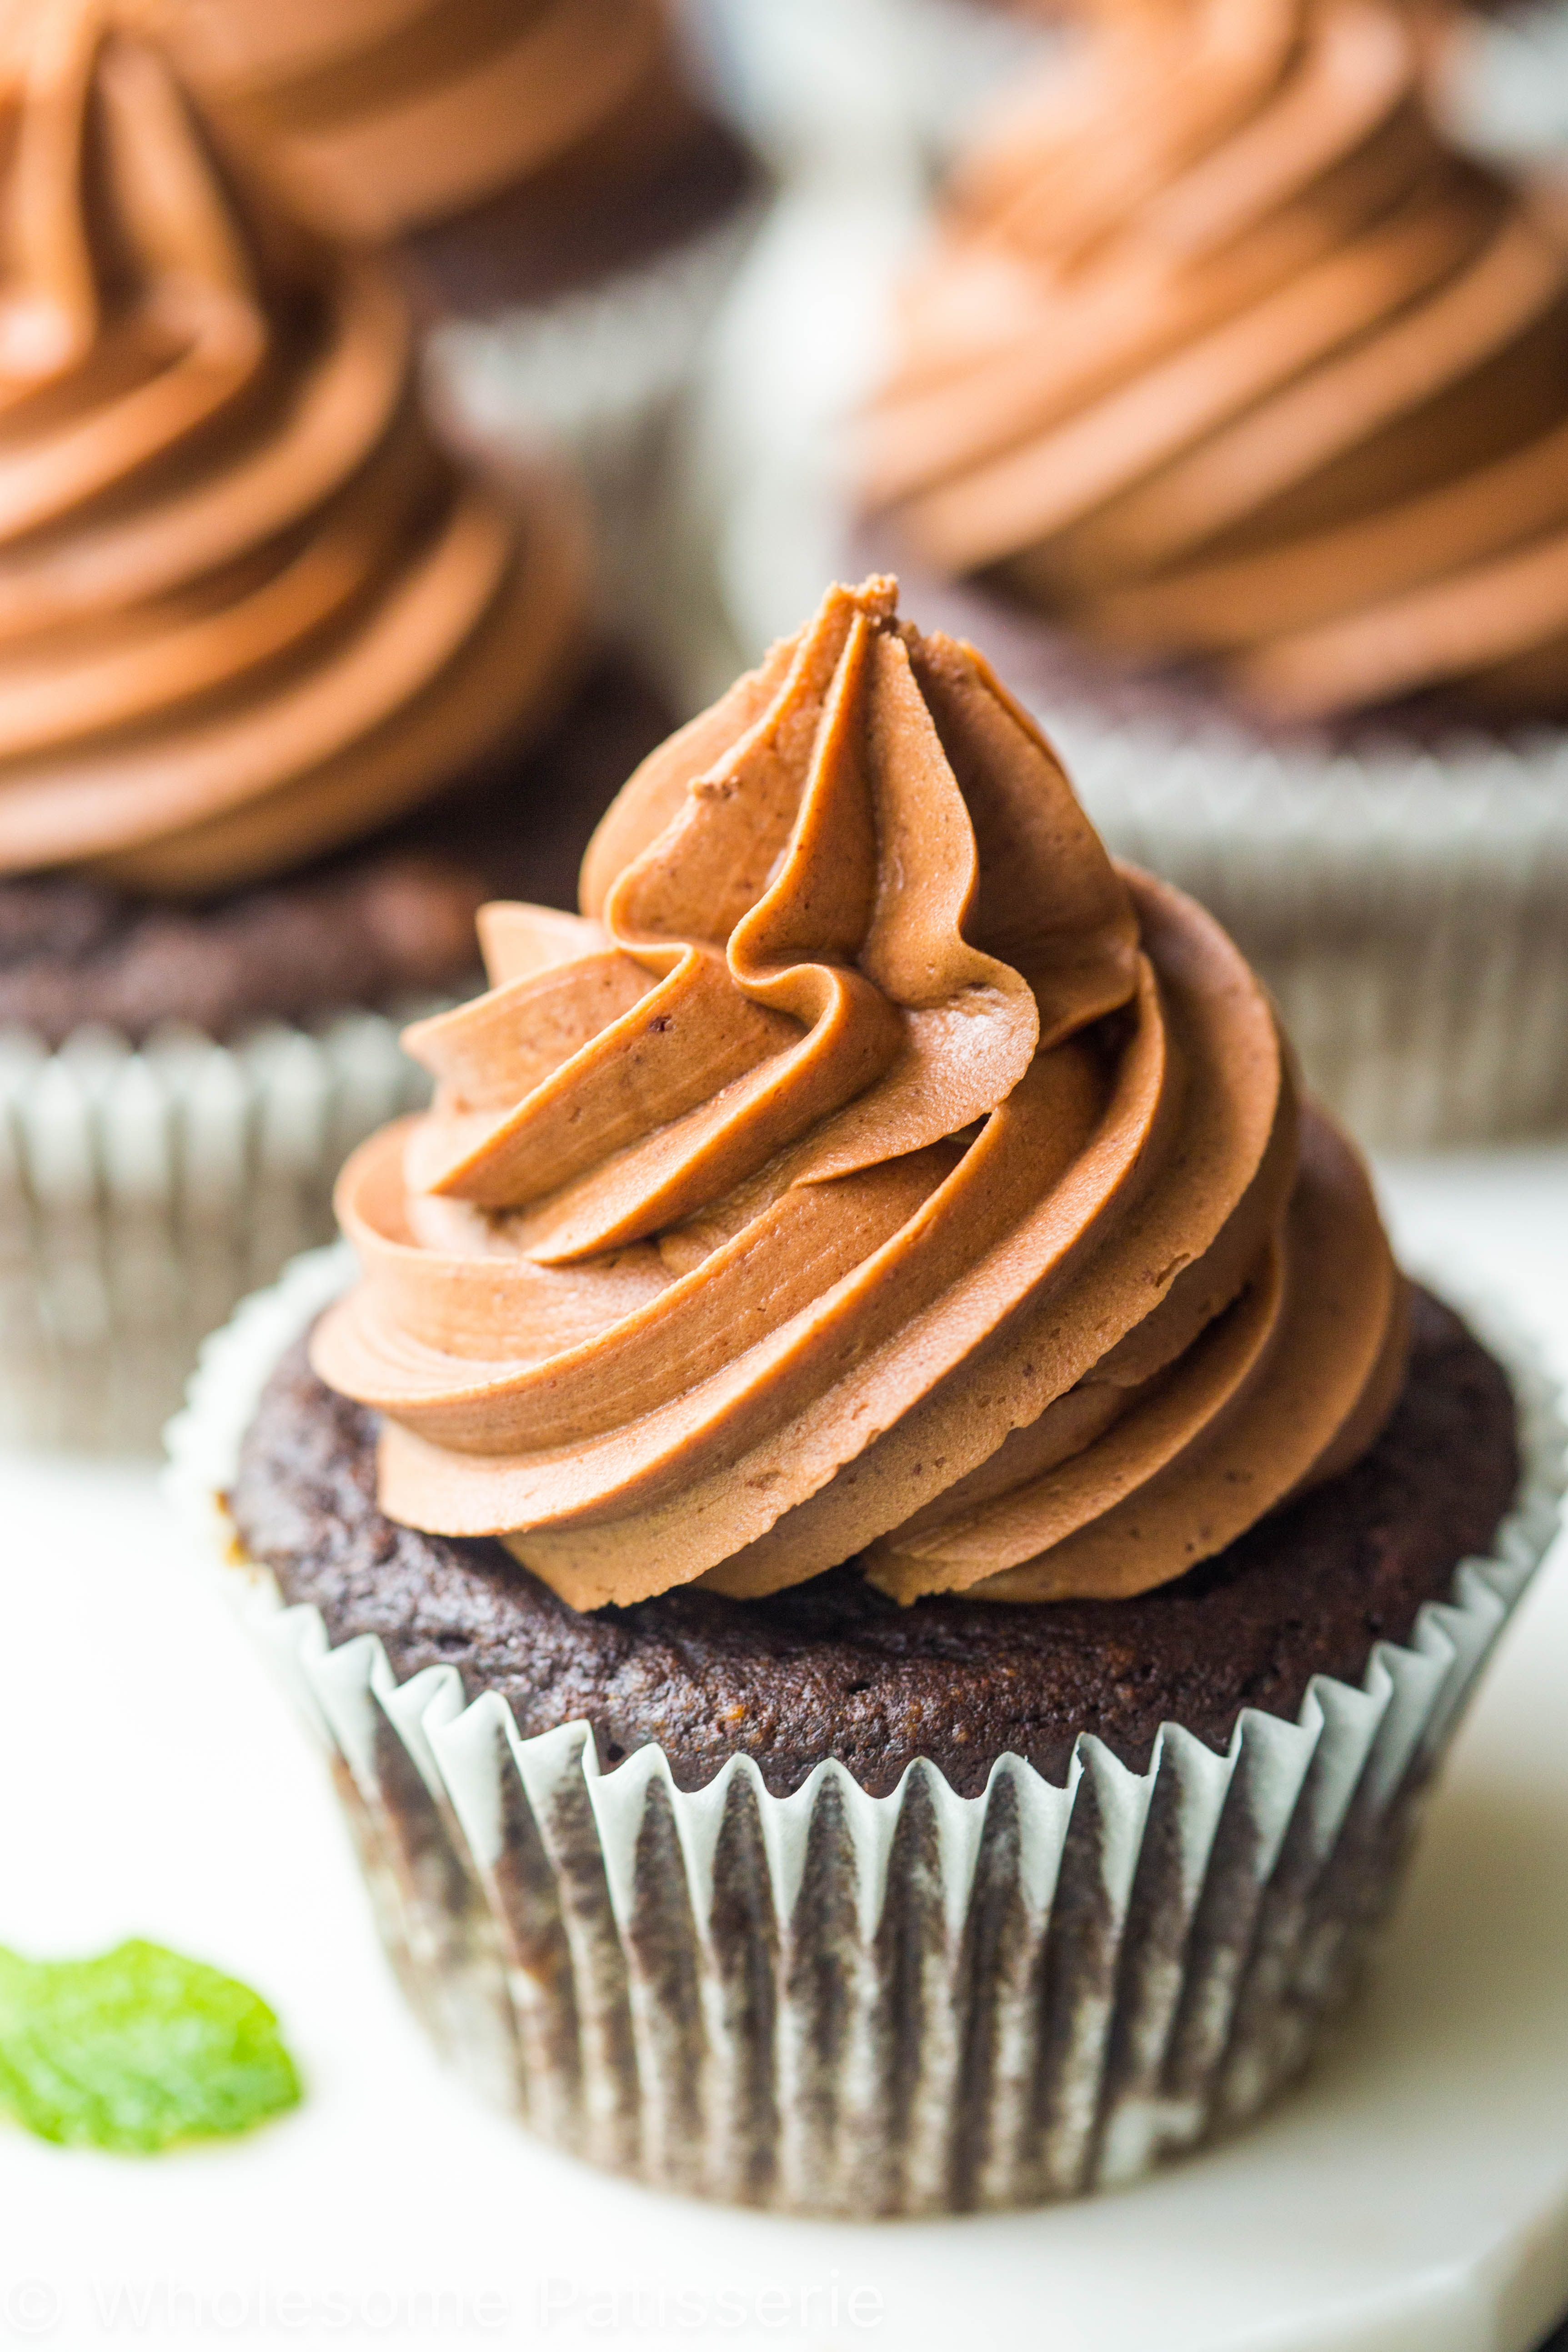 mint-chocolate-cupcakes-gluten-free-vegetarian-mint-baking-delicious-easy